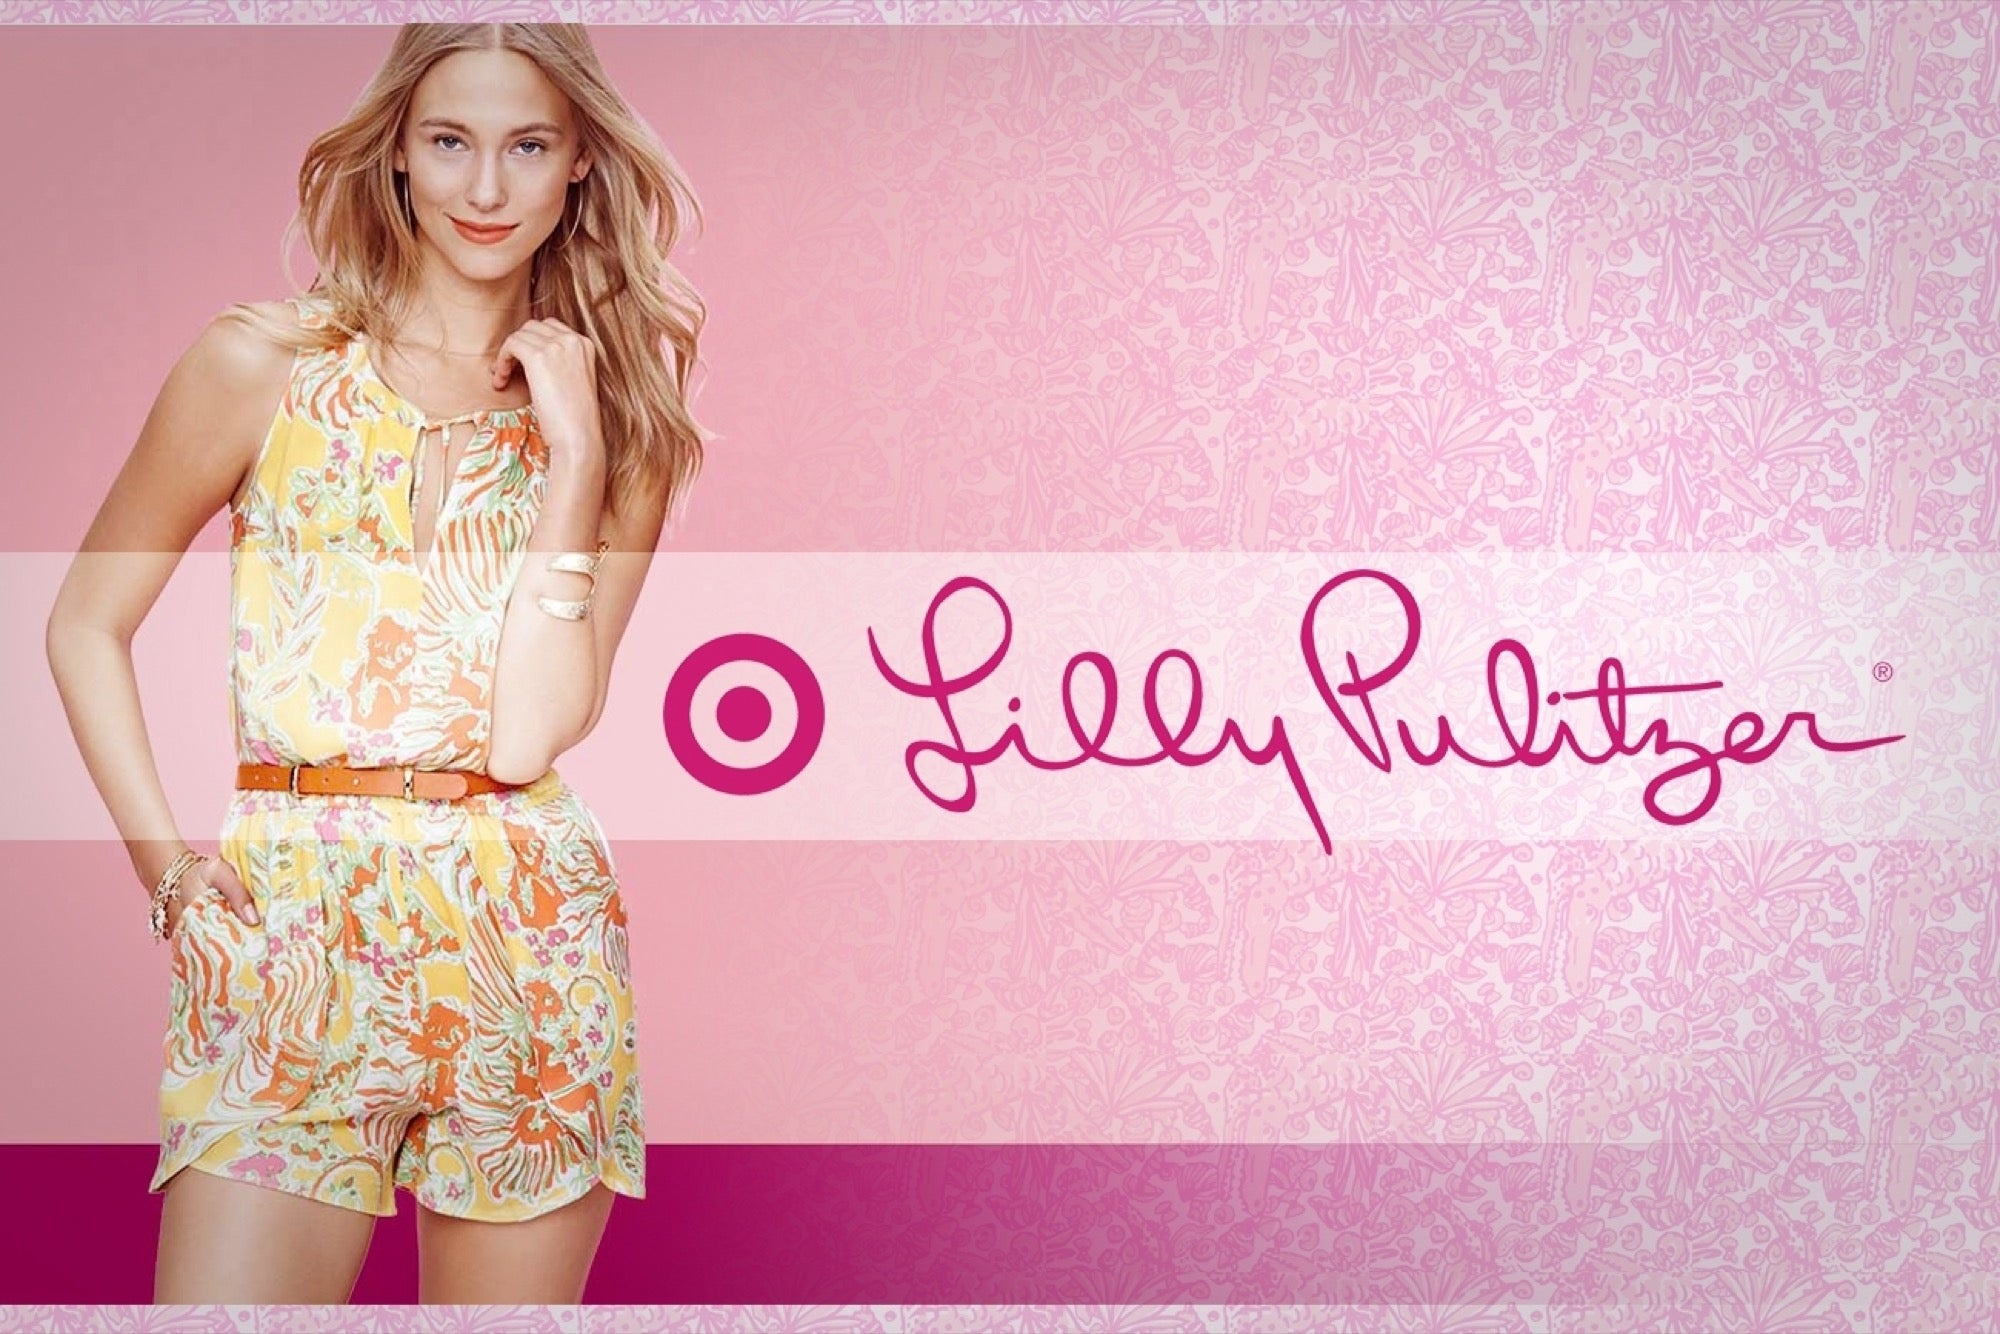 To acquire Target partners with Lilly Pulitzer picture trends